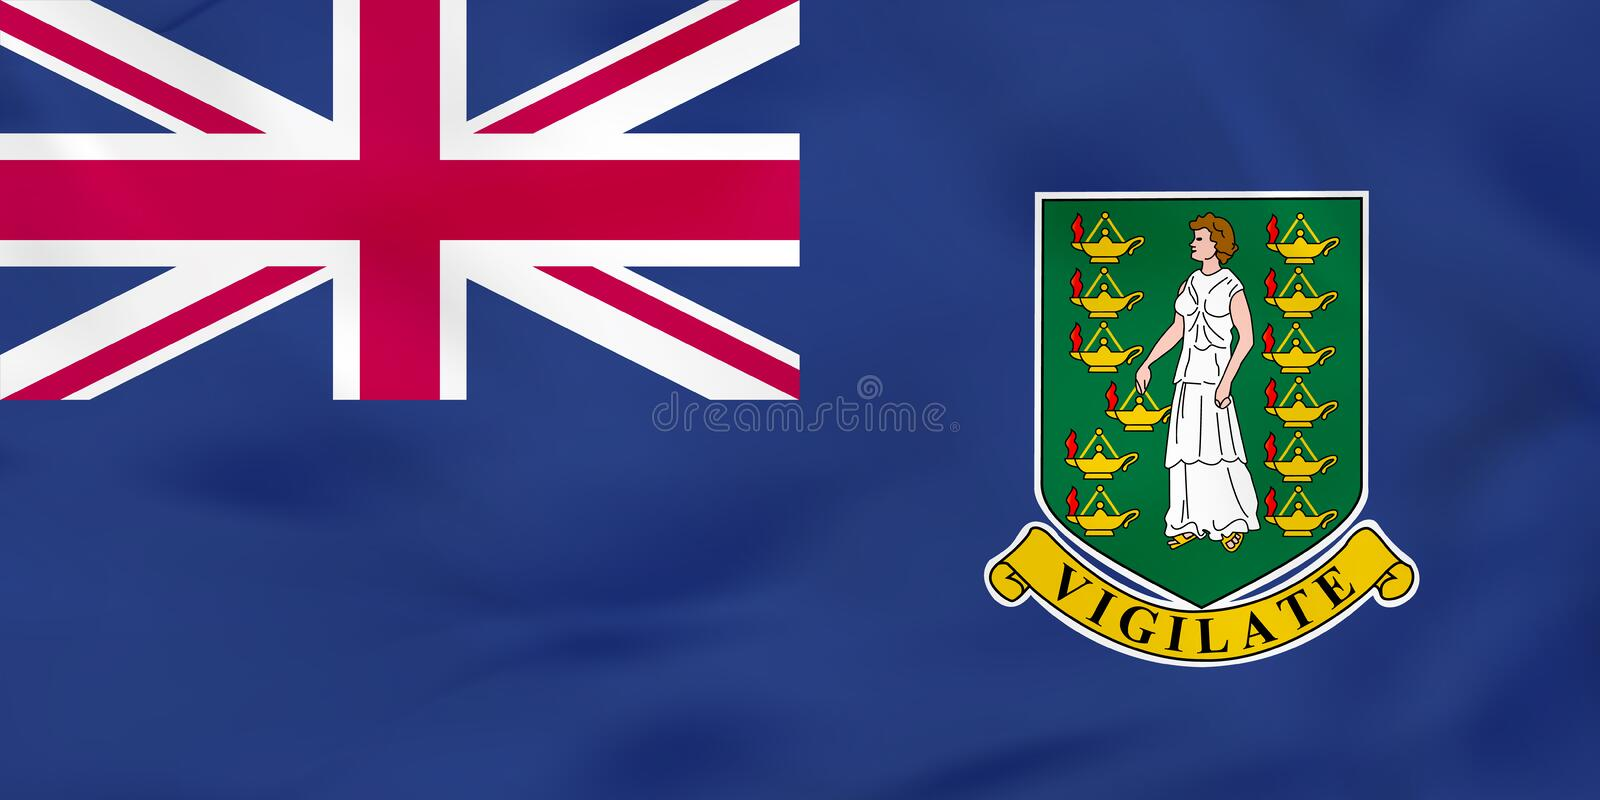 British Virgin Islands que agitan la bandera Textura del fondo de la bandera nacional de British Virgin Islands libre illustration